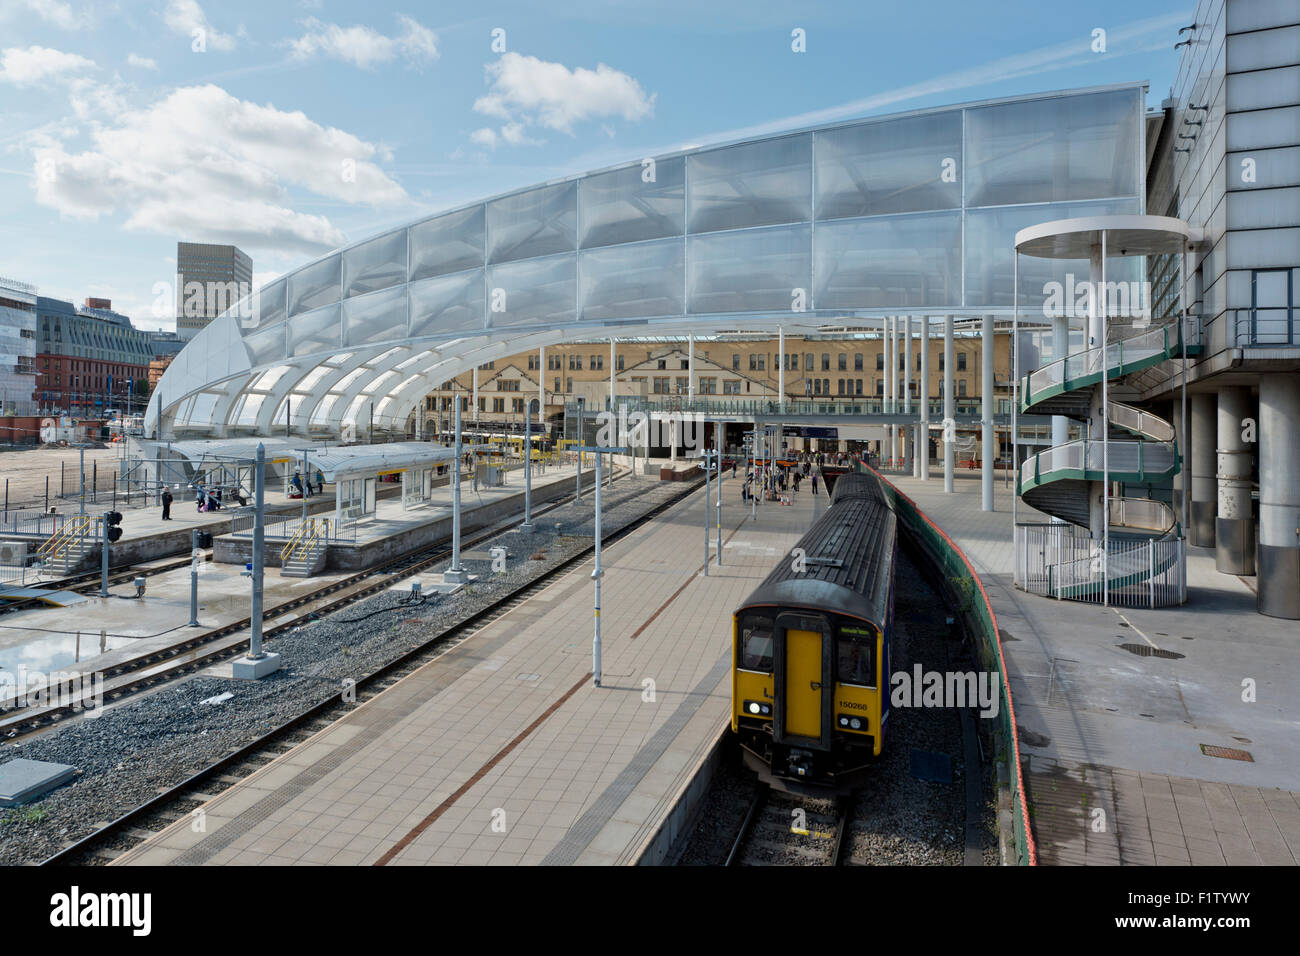 The refurbished Victoria Station in Manchester, as a Northern Rail train emerges - Stock Image